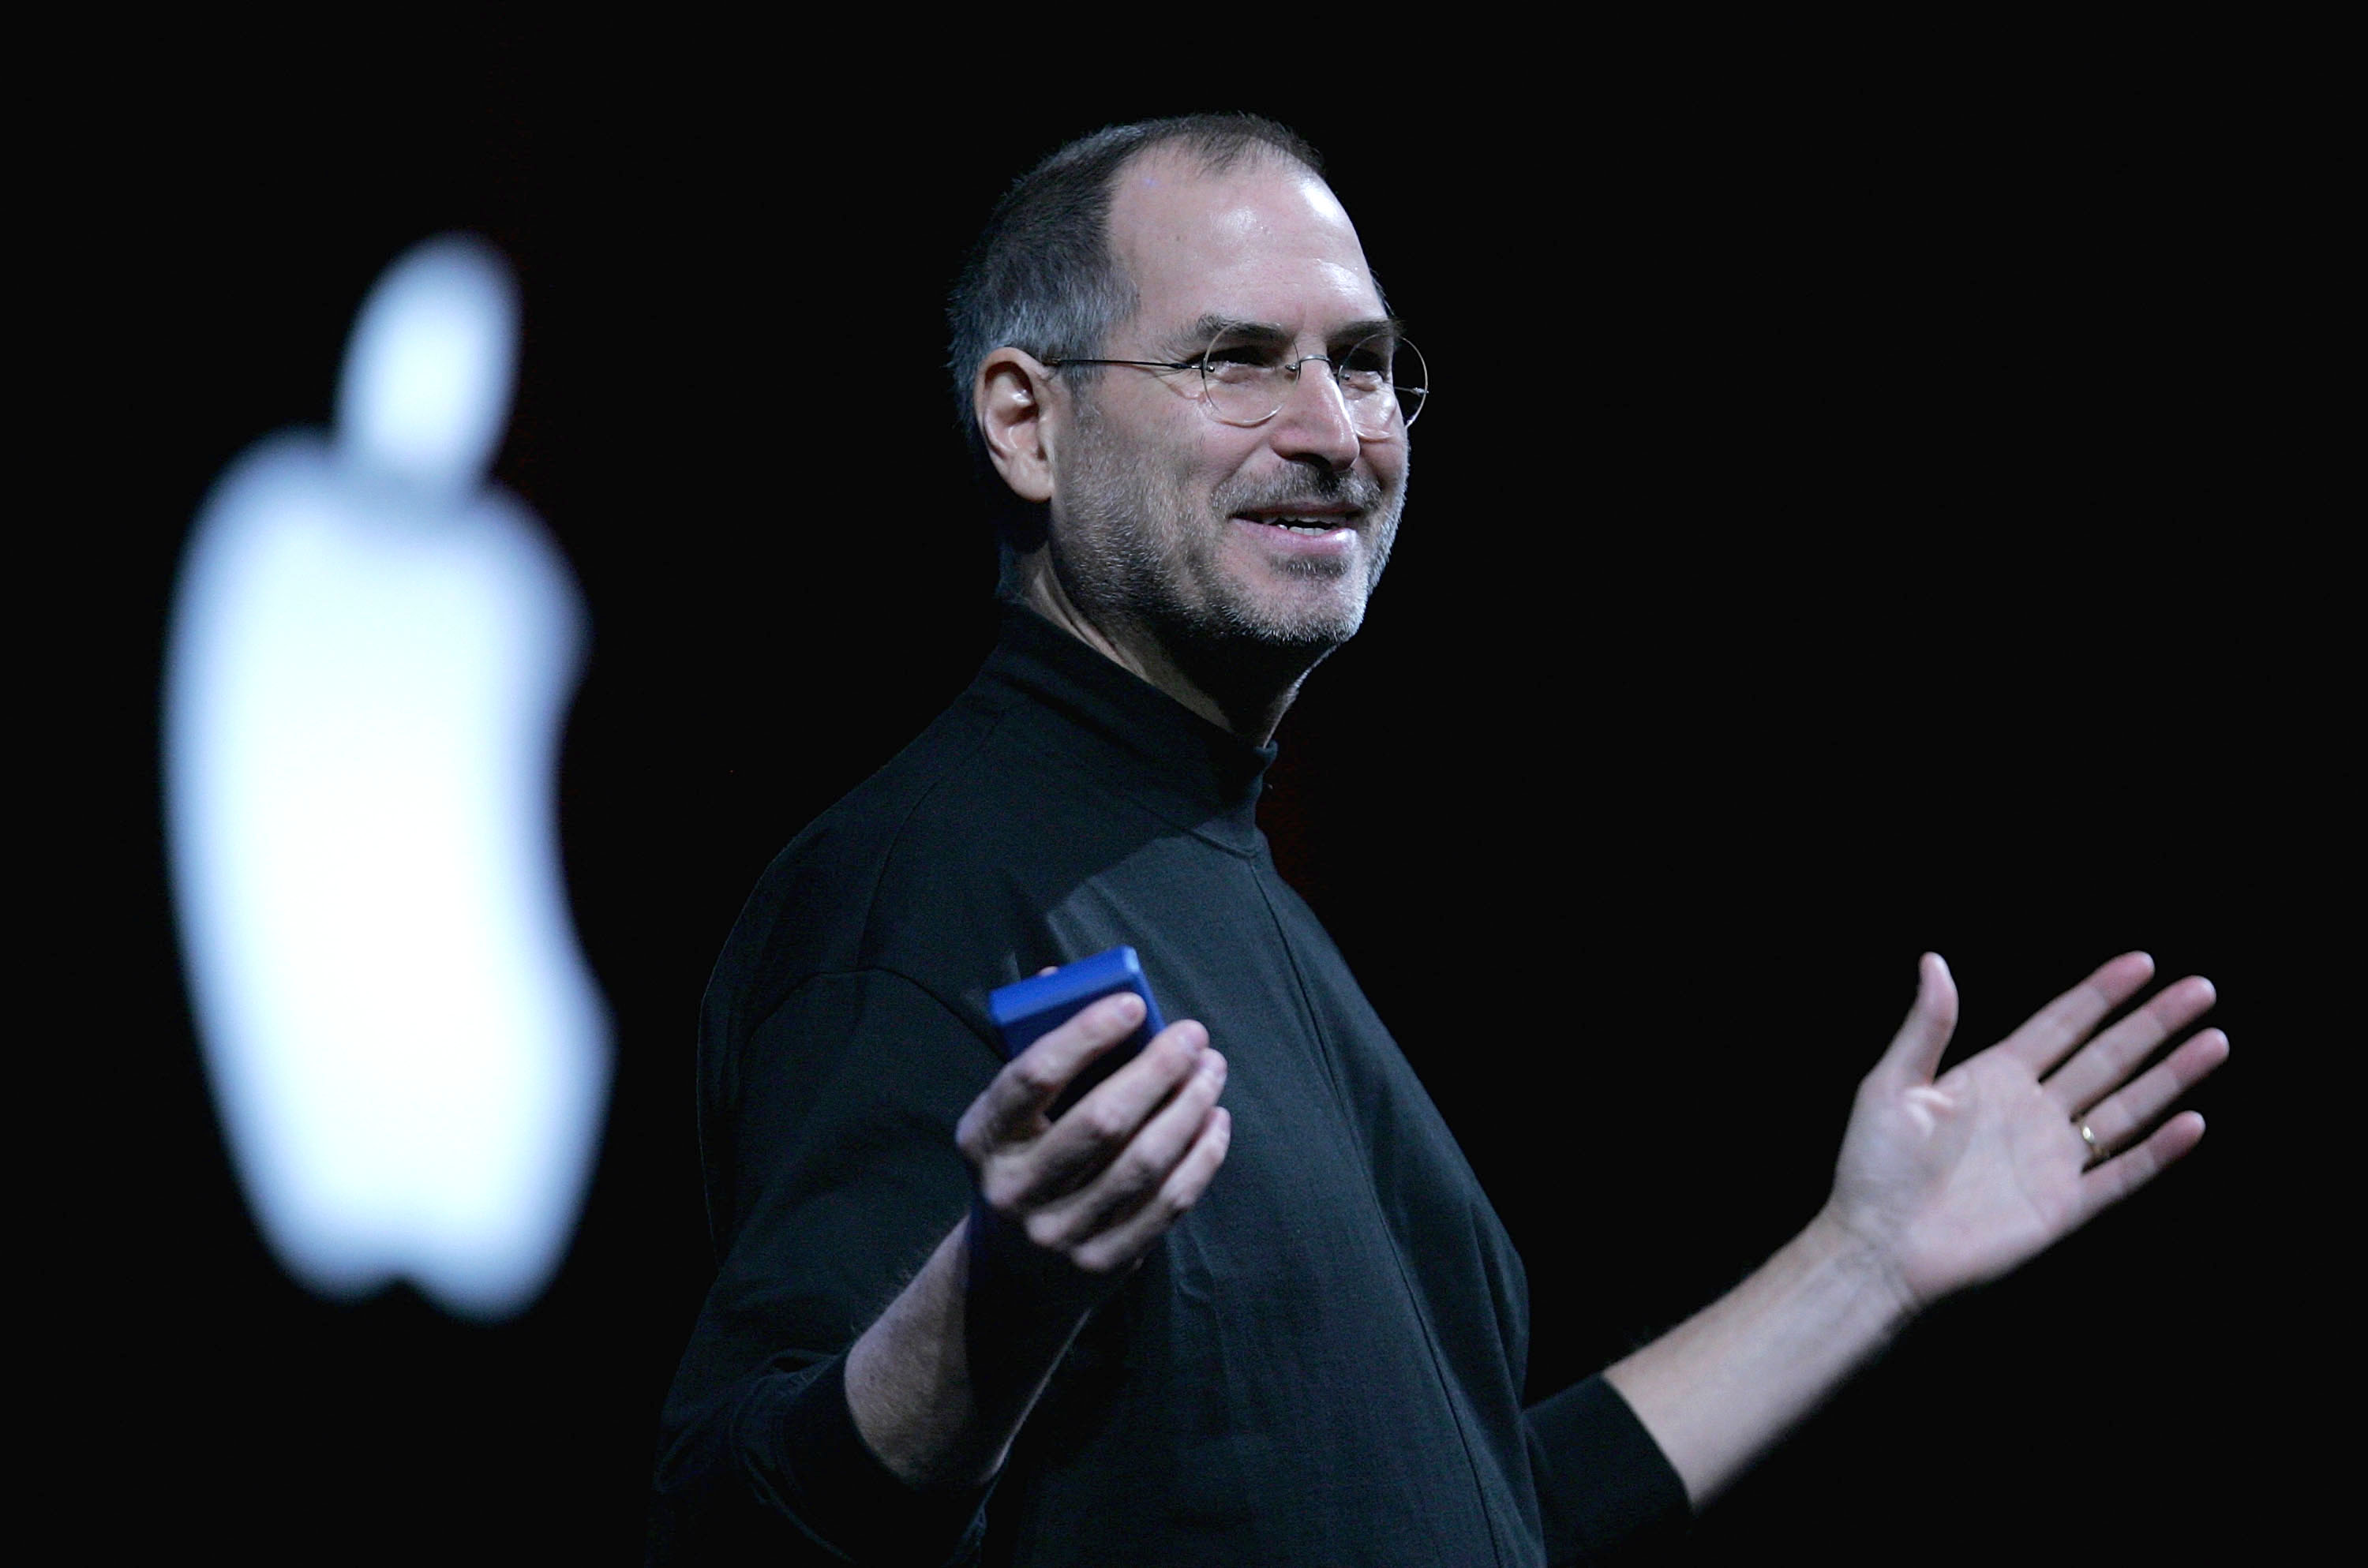 Apple CEO Steve Jobs delivers a keynote address at the 2005 Macworld Expo January 11, 2005 in San Francisco, California.